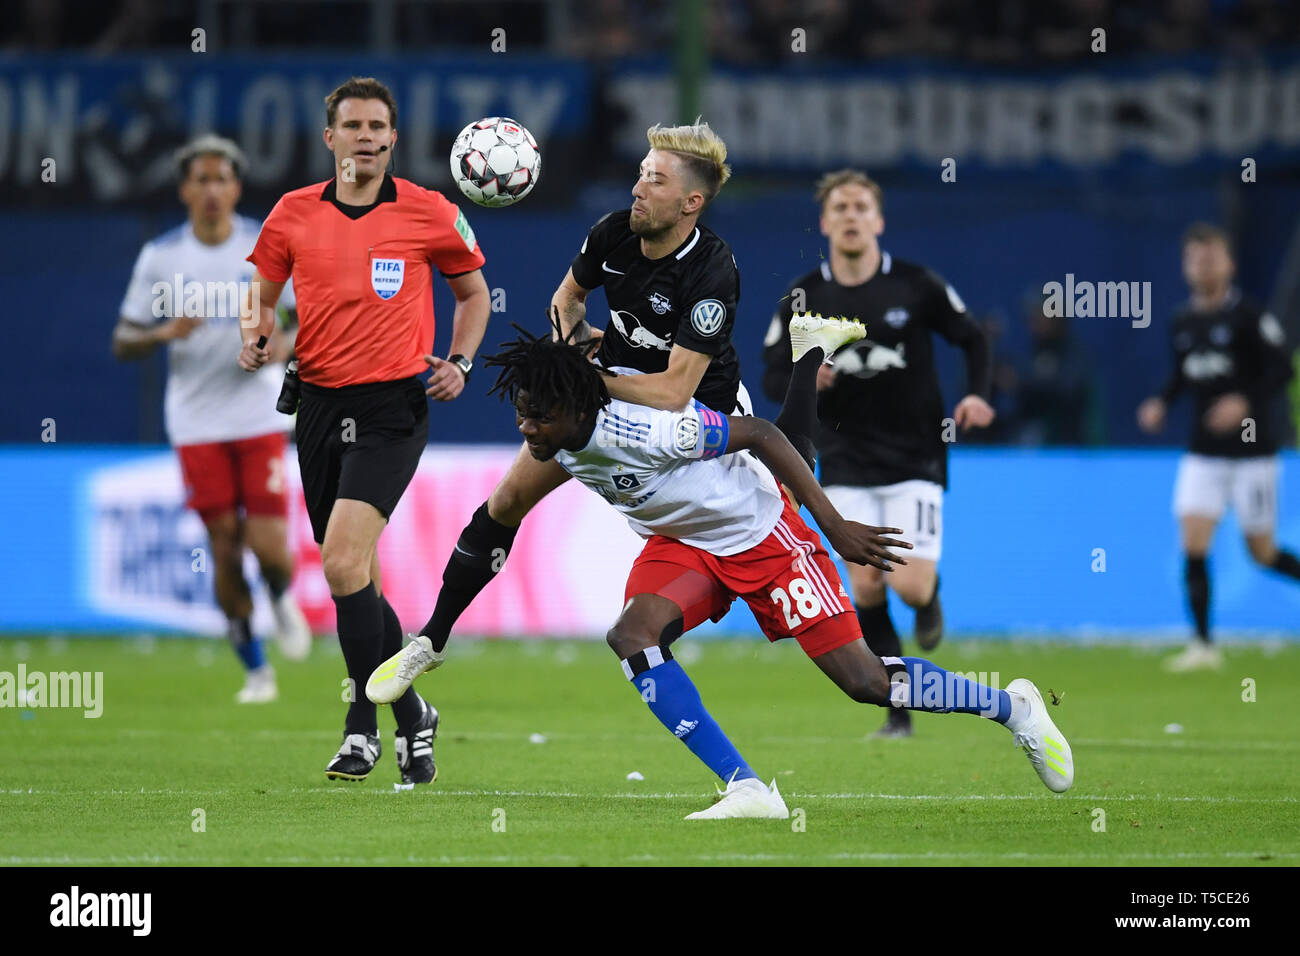 HAMBURG, GERMANY - APRIL 23: Gideon Jung (L) of Hamburg and Kevin Kampl (R) of Leipzig competes for the ball during the DFB Pokal semi final match bet - Stock Image